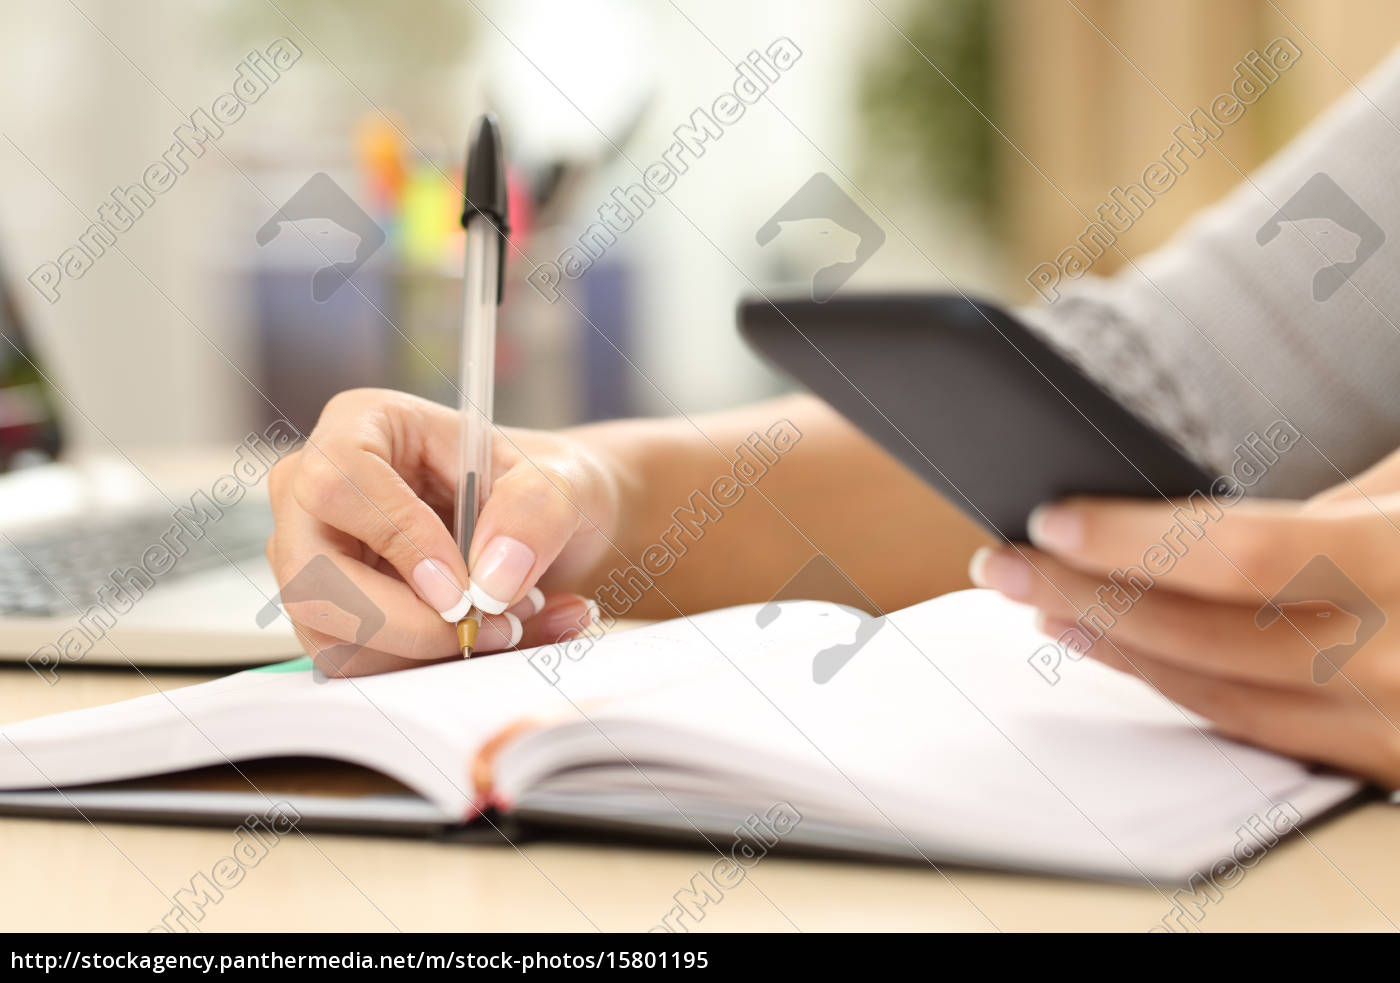 woman, hand, writing, in, agenda, consulting - 15801195